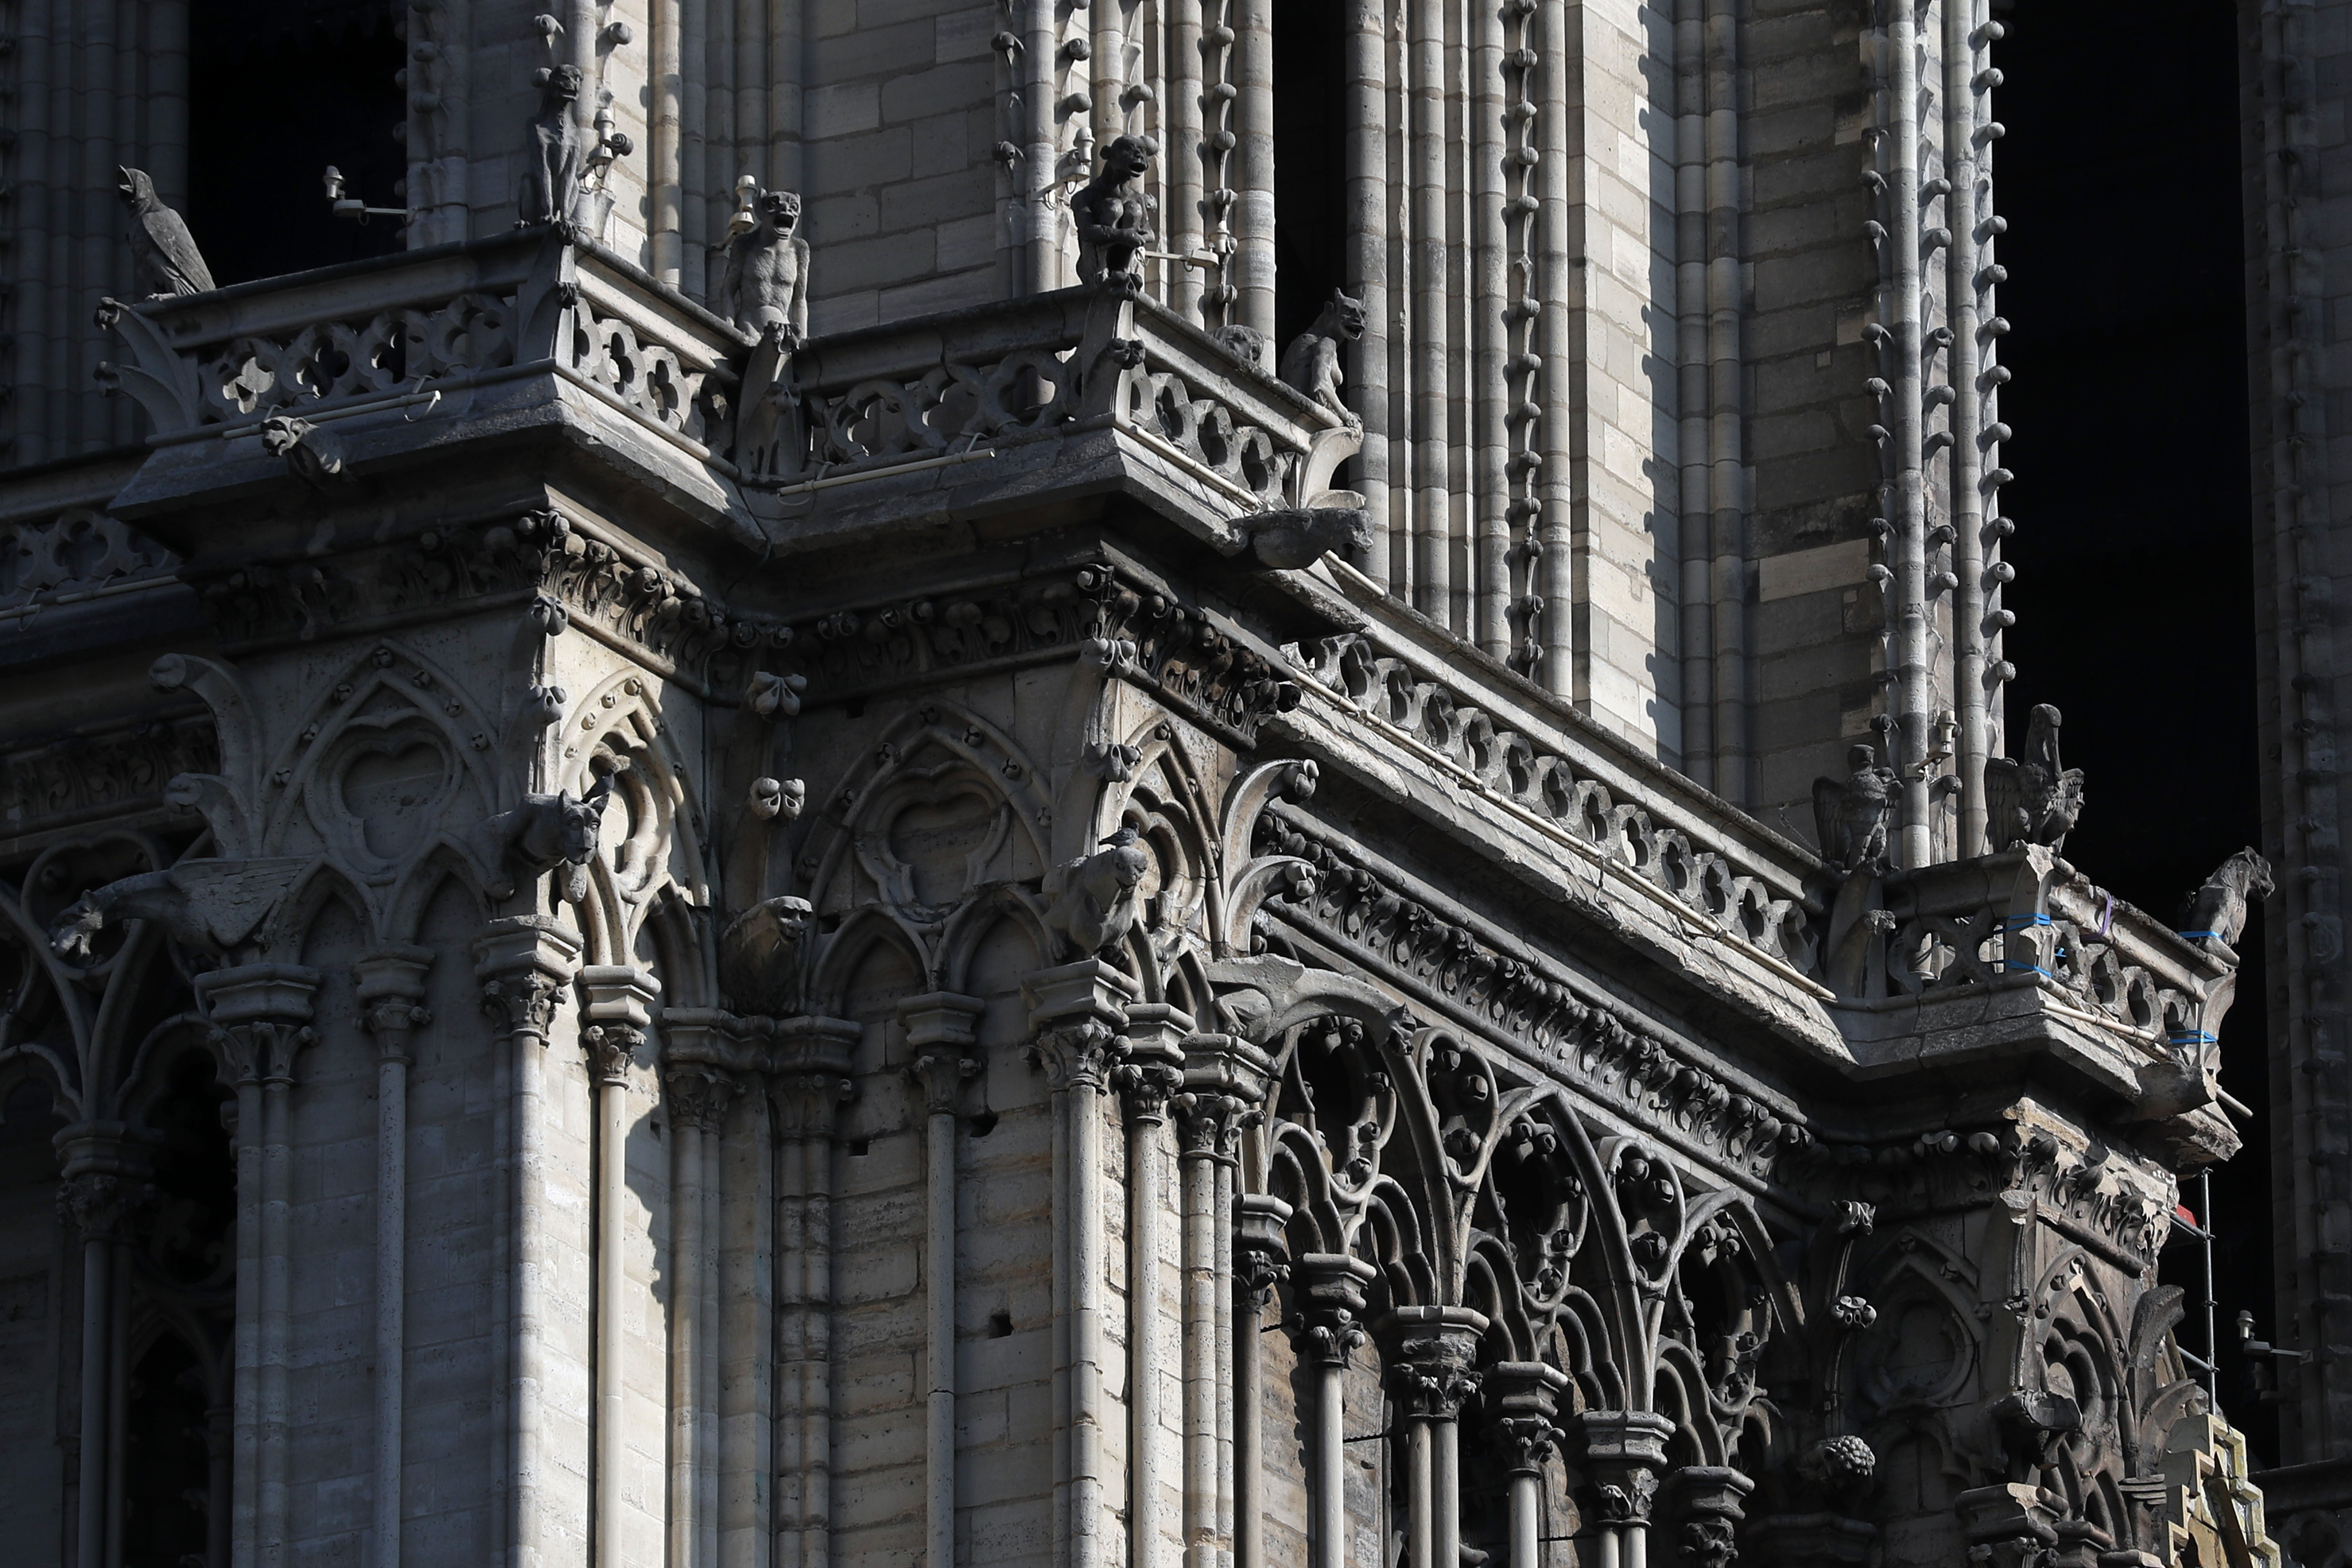 Gargoyles of Notre Dame cathedral are pictured Friday, April 19, 2019 in Paris. Rebuilding Notre Dame, the 800-year-old Paris cathedral devastated by fire this week, will cost billions of dollars as architects, historians and artisans work to preserve the medieval landmark. (AP Photo/Thibault Camus)